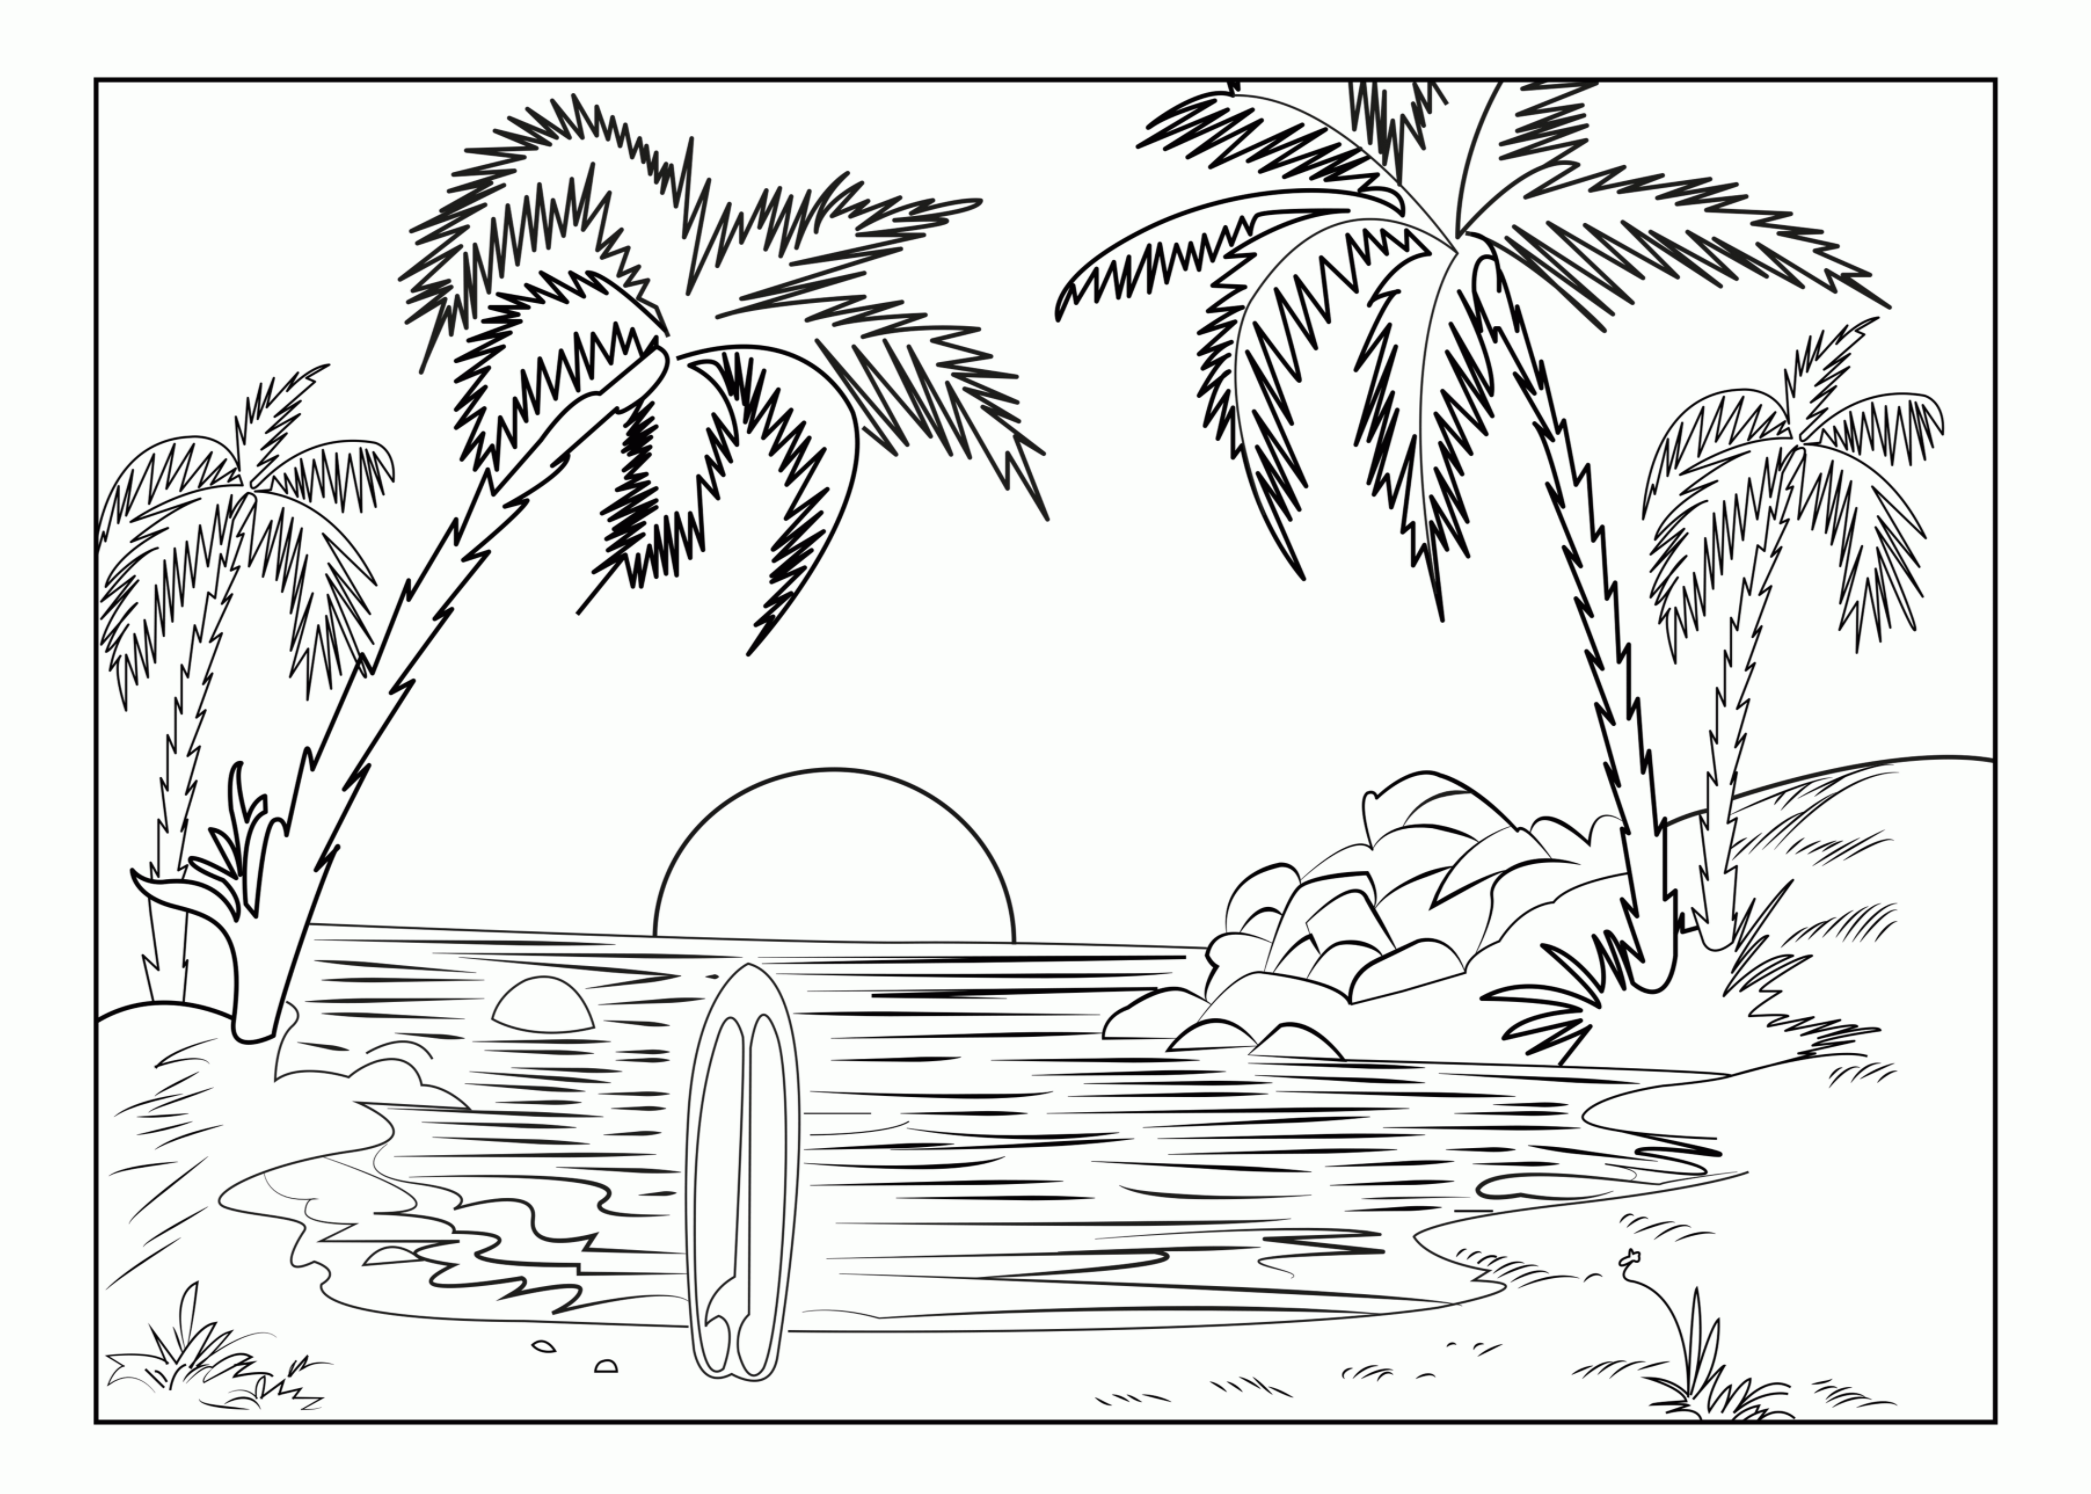 Pin By Saas Transportation Inc On Coloring Pages In 2020 Coloring Pages Nature Beach Coloring Pages Summer Coloring Pages